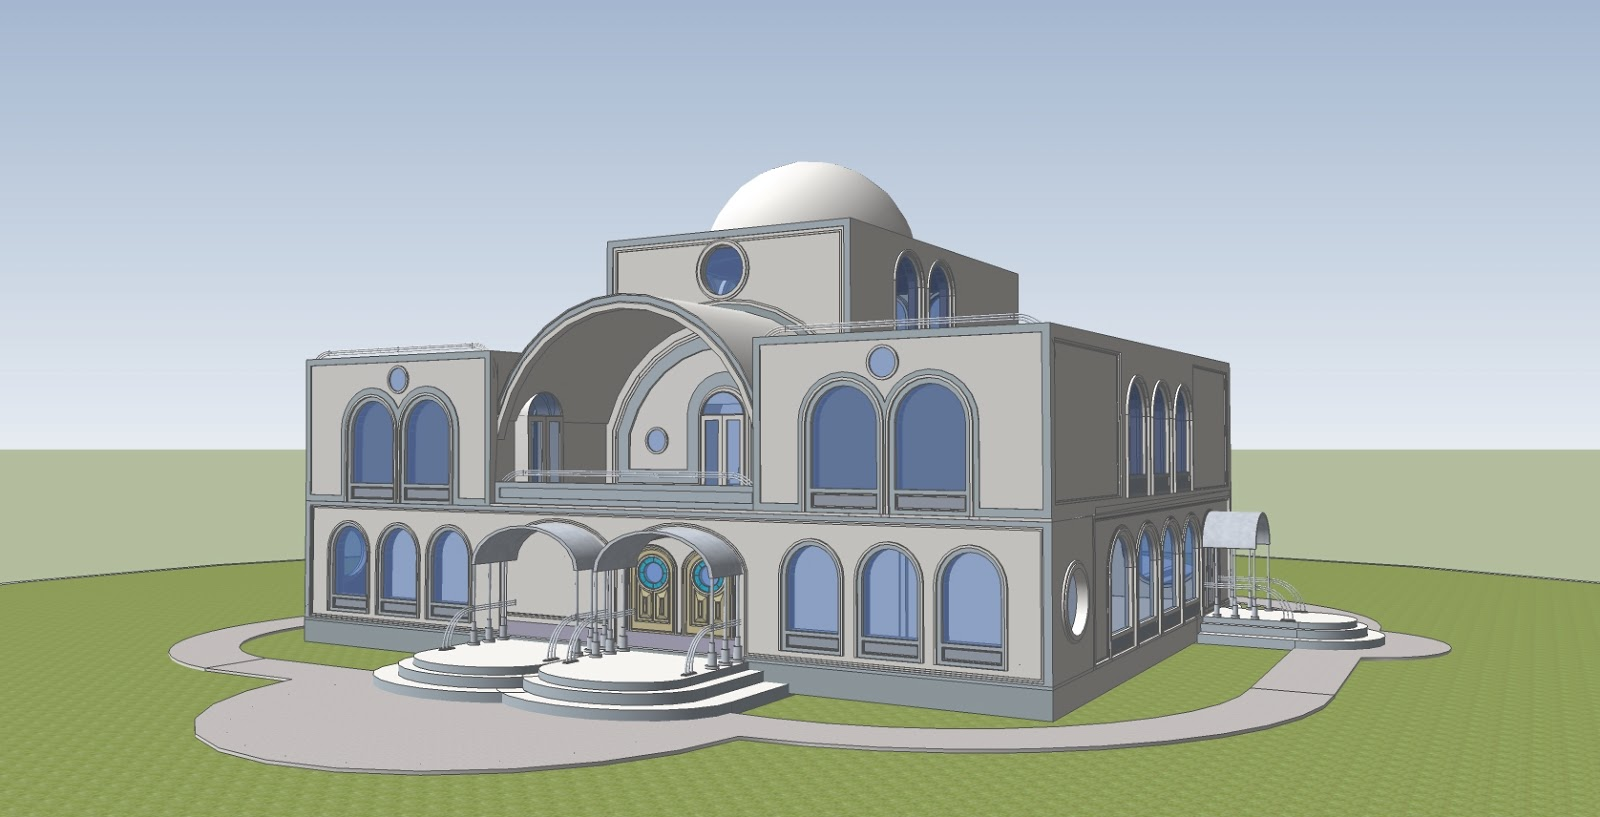 Sketchup by dawn april 2013 for Modern house design sketchup